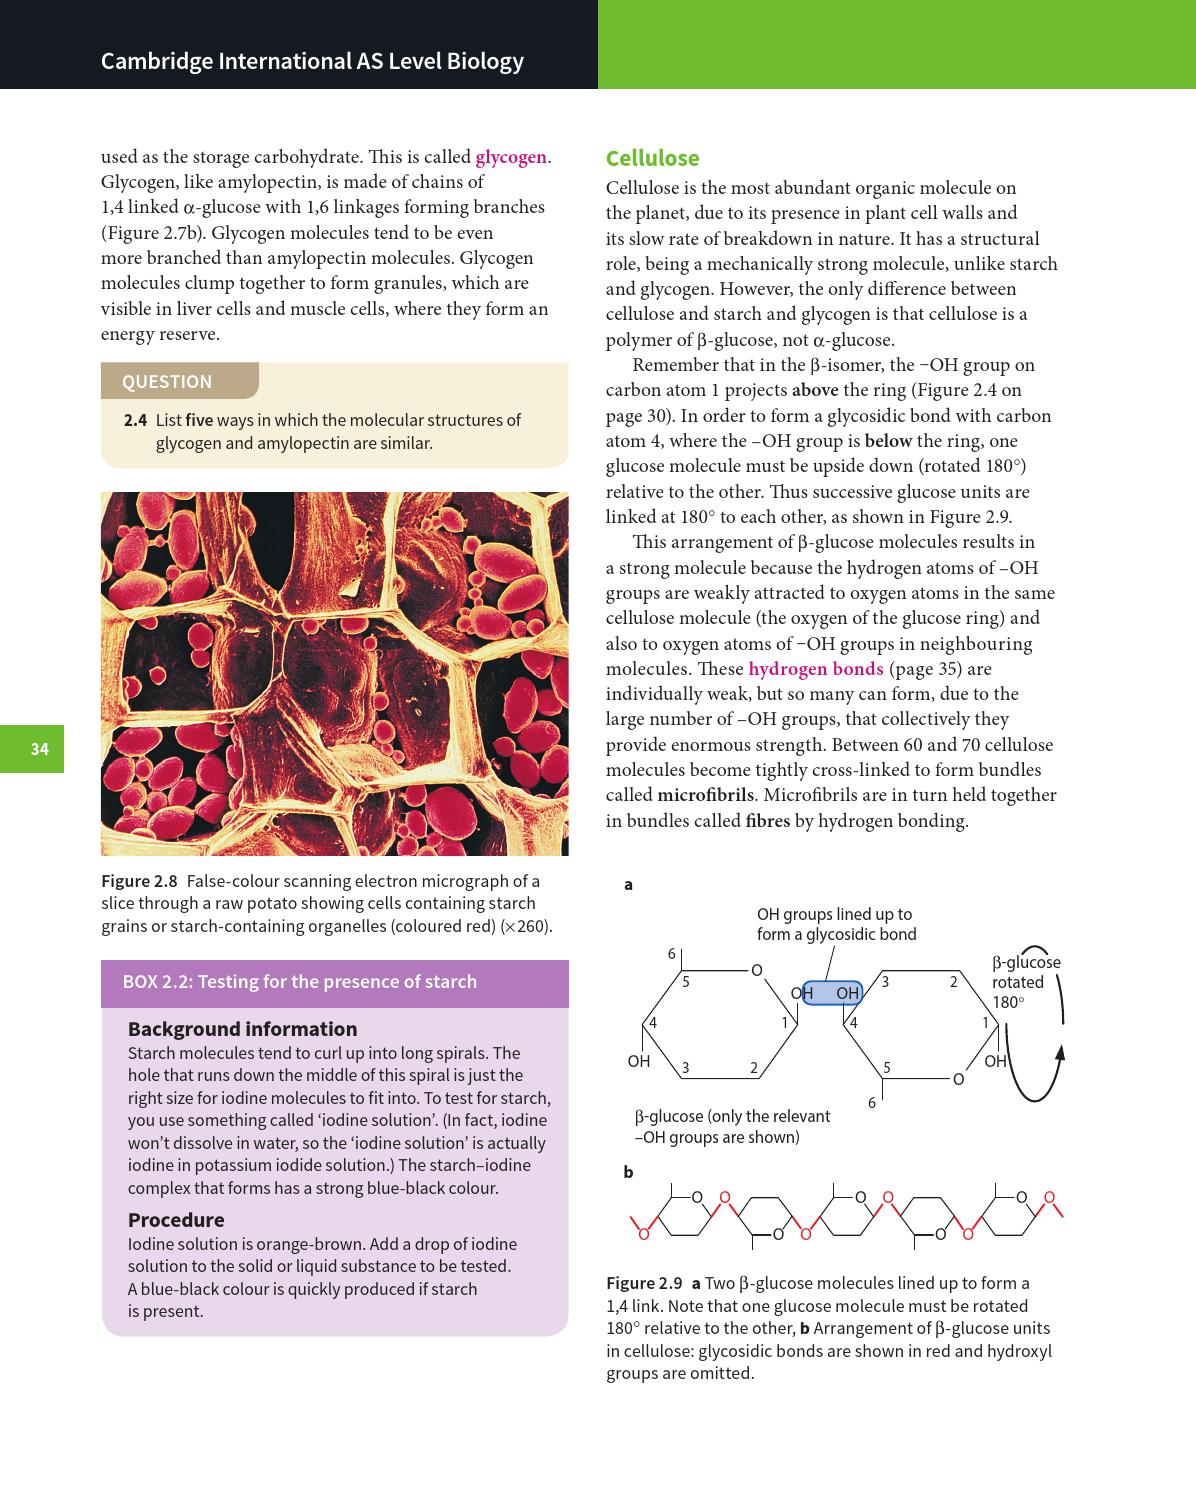 Cambridge International As And A Level Biology Coursebook With Cd Rom By Cambridge University Press Education Issuu